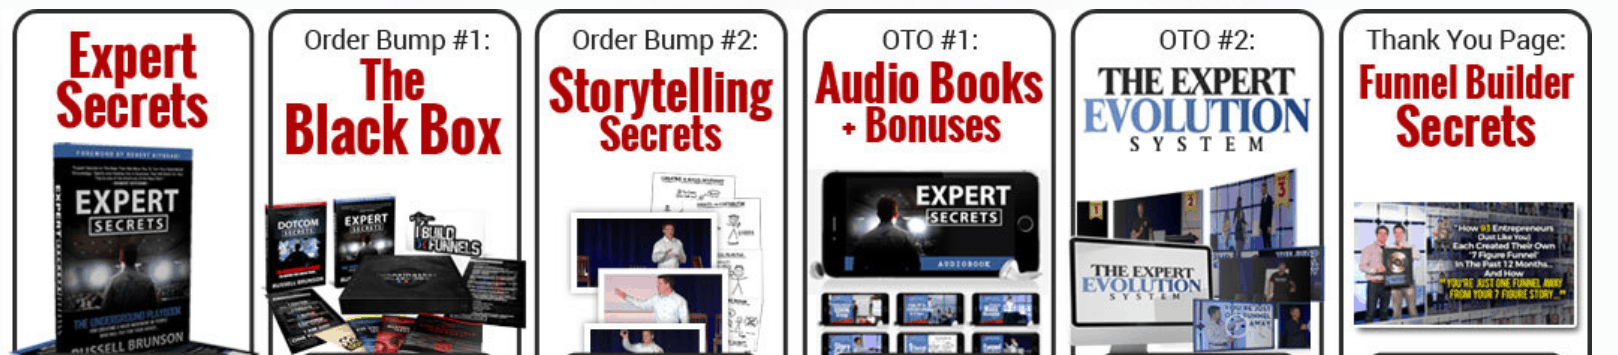 ClickFunnels Expert Secrets - Affiliate Programs With High Commission